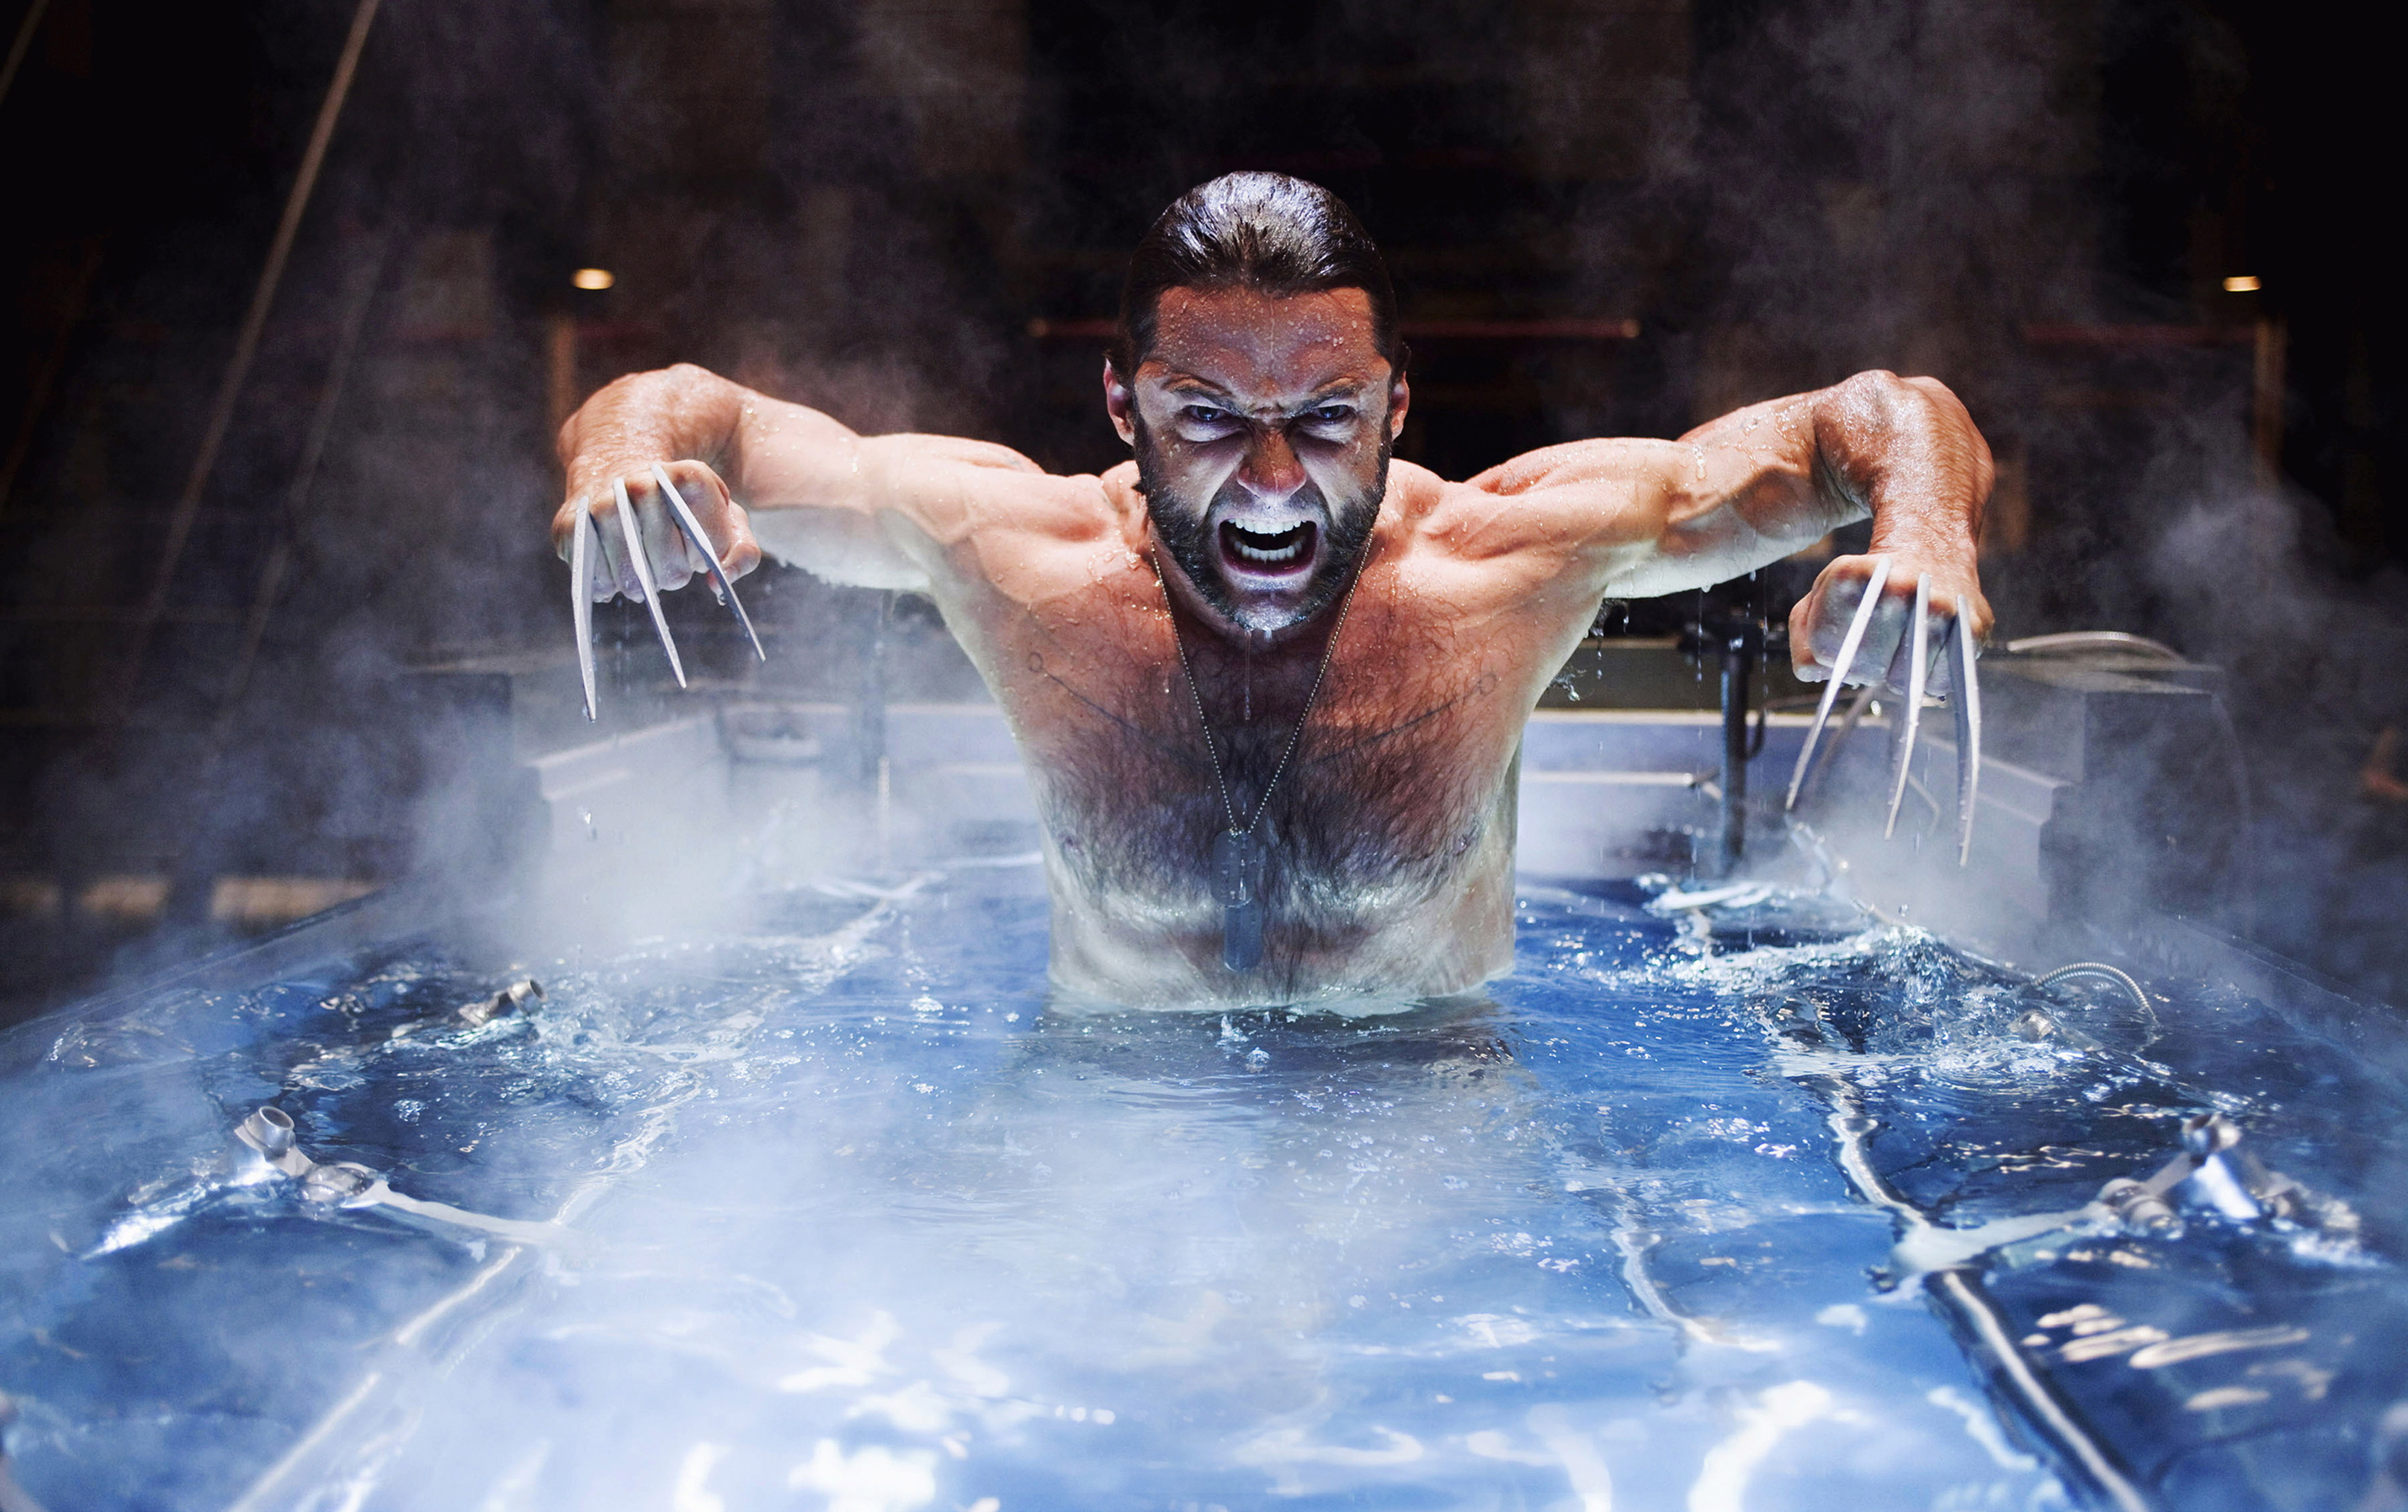 Hugh Jackman emerges from a brutal baptism in 'X-Men Origins: Wolverine'